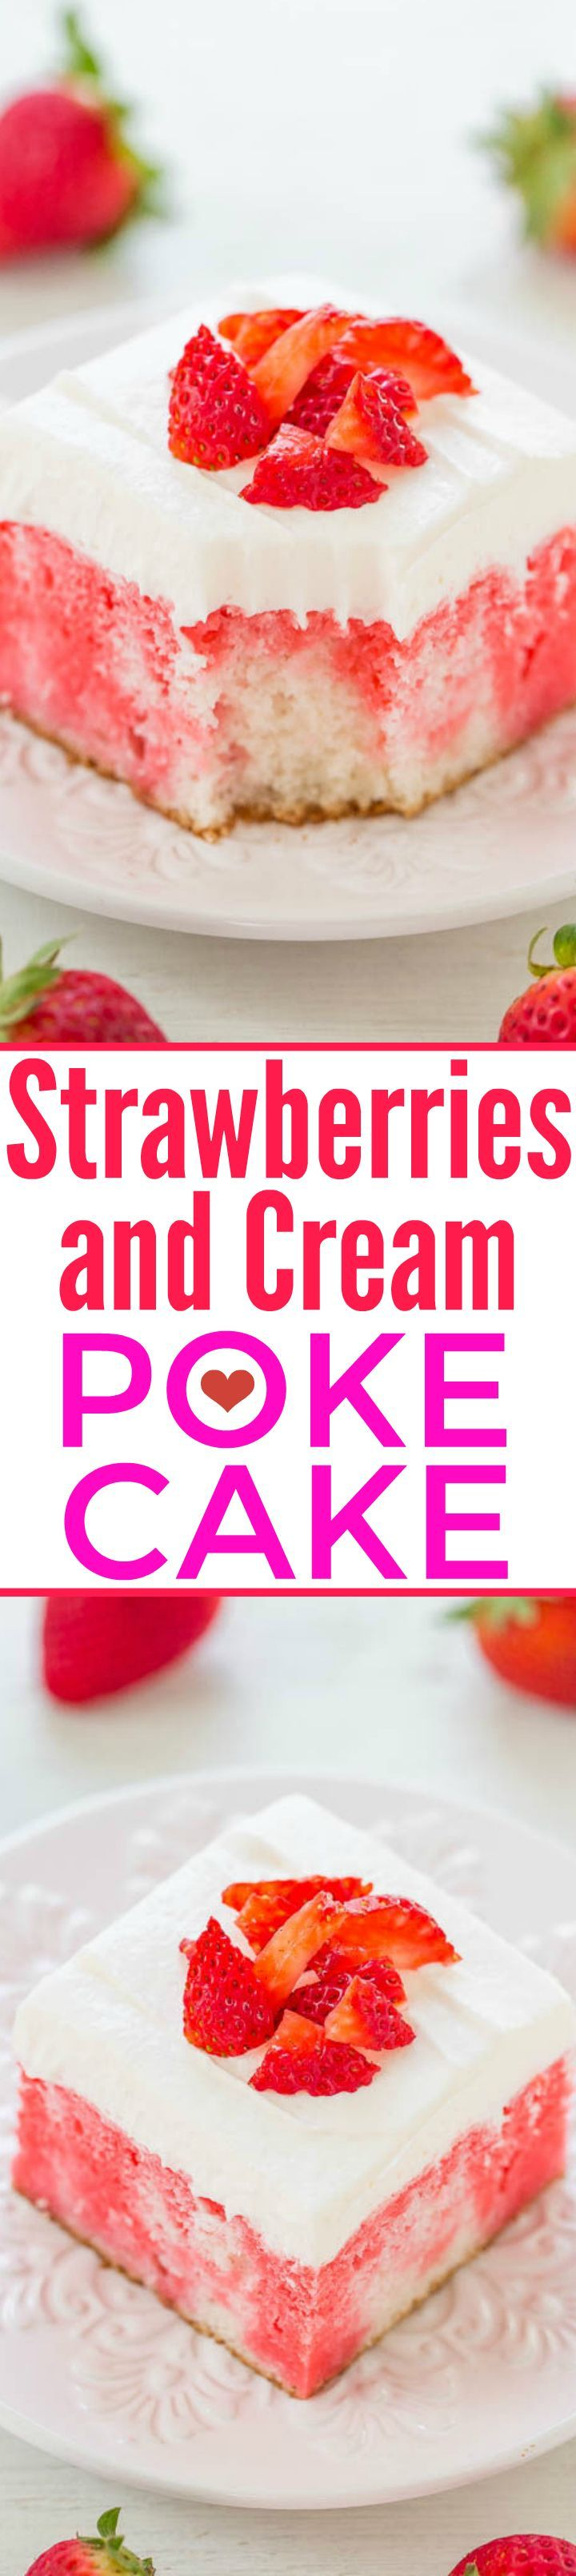 Strawberries and Cream Poke Cake A fast EASY foolproof cake that looks tie